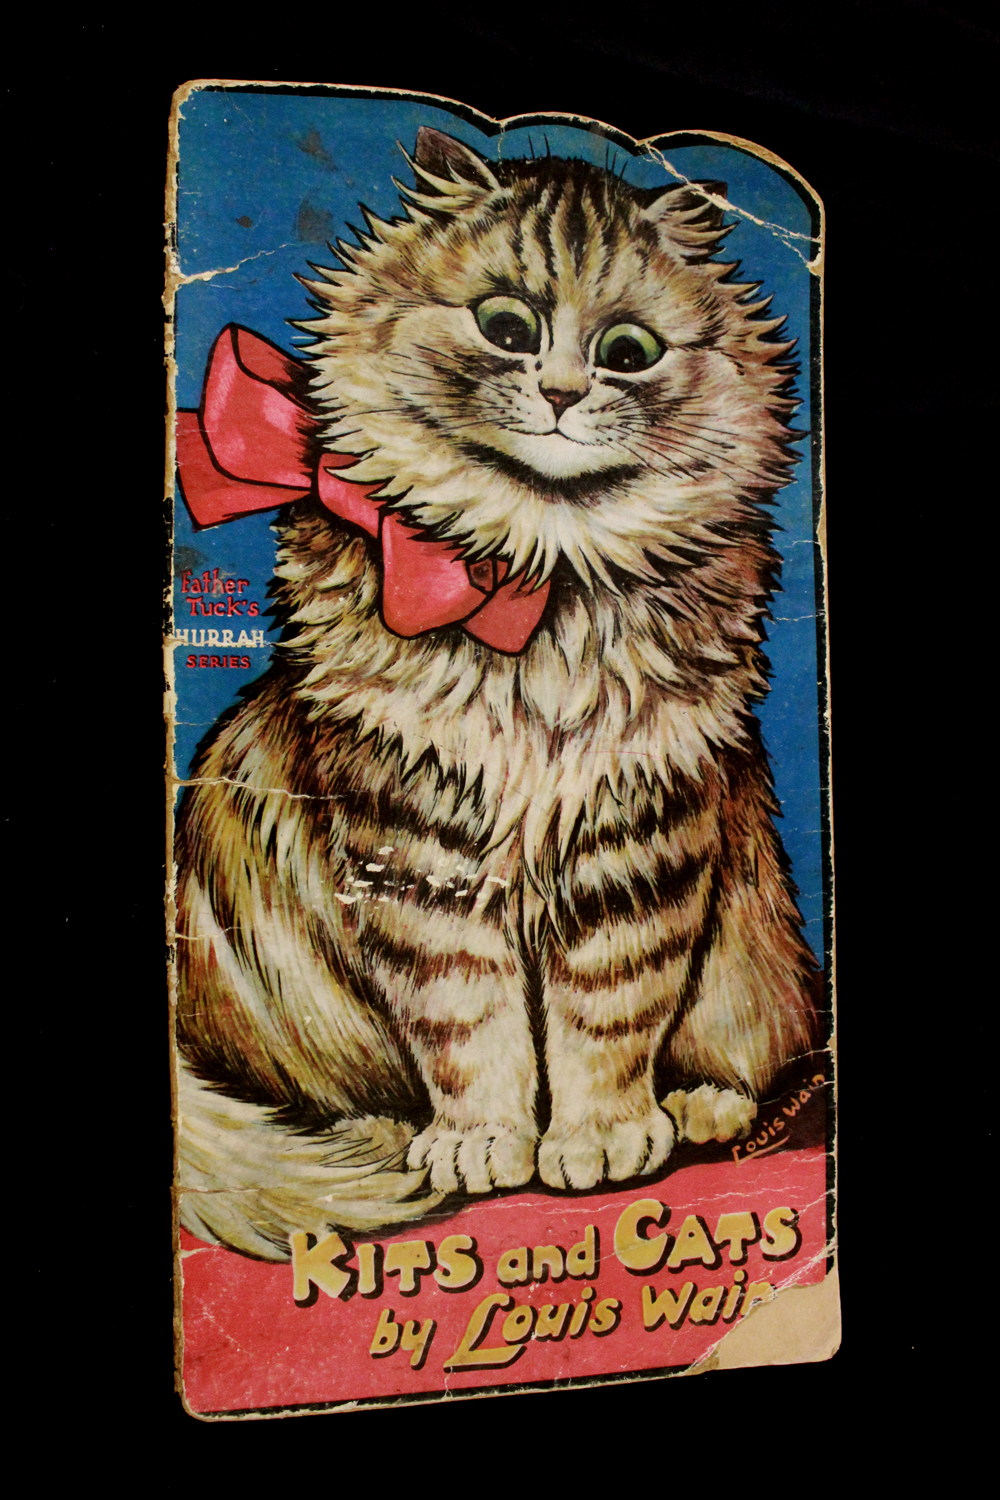 LOUIS WAIN: KITS AND CATS [SHAPE BOOK], London, Raphael Tuck, circa 1930, 4 full page leaves of